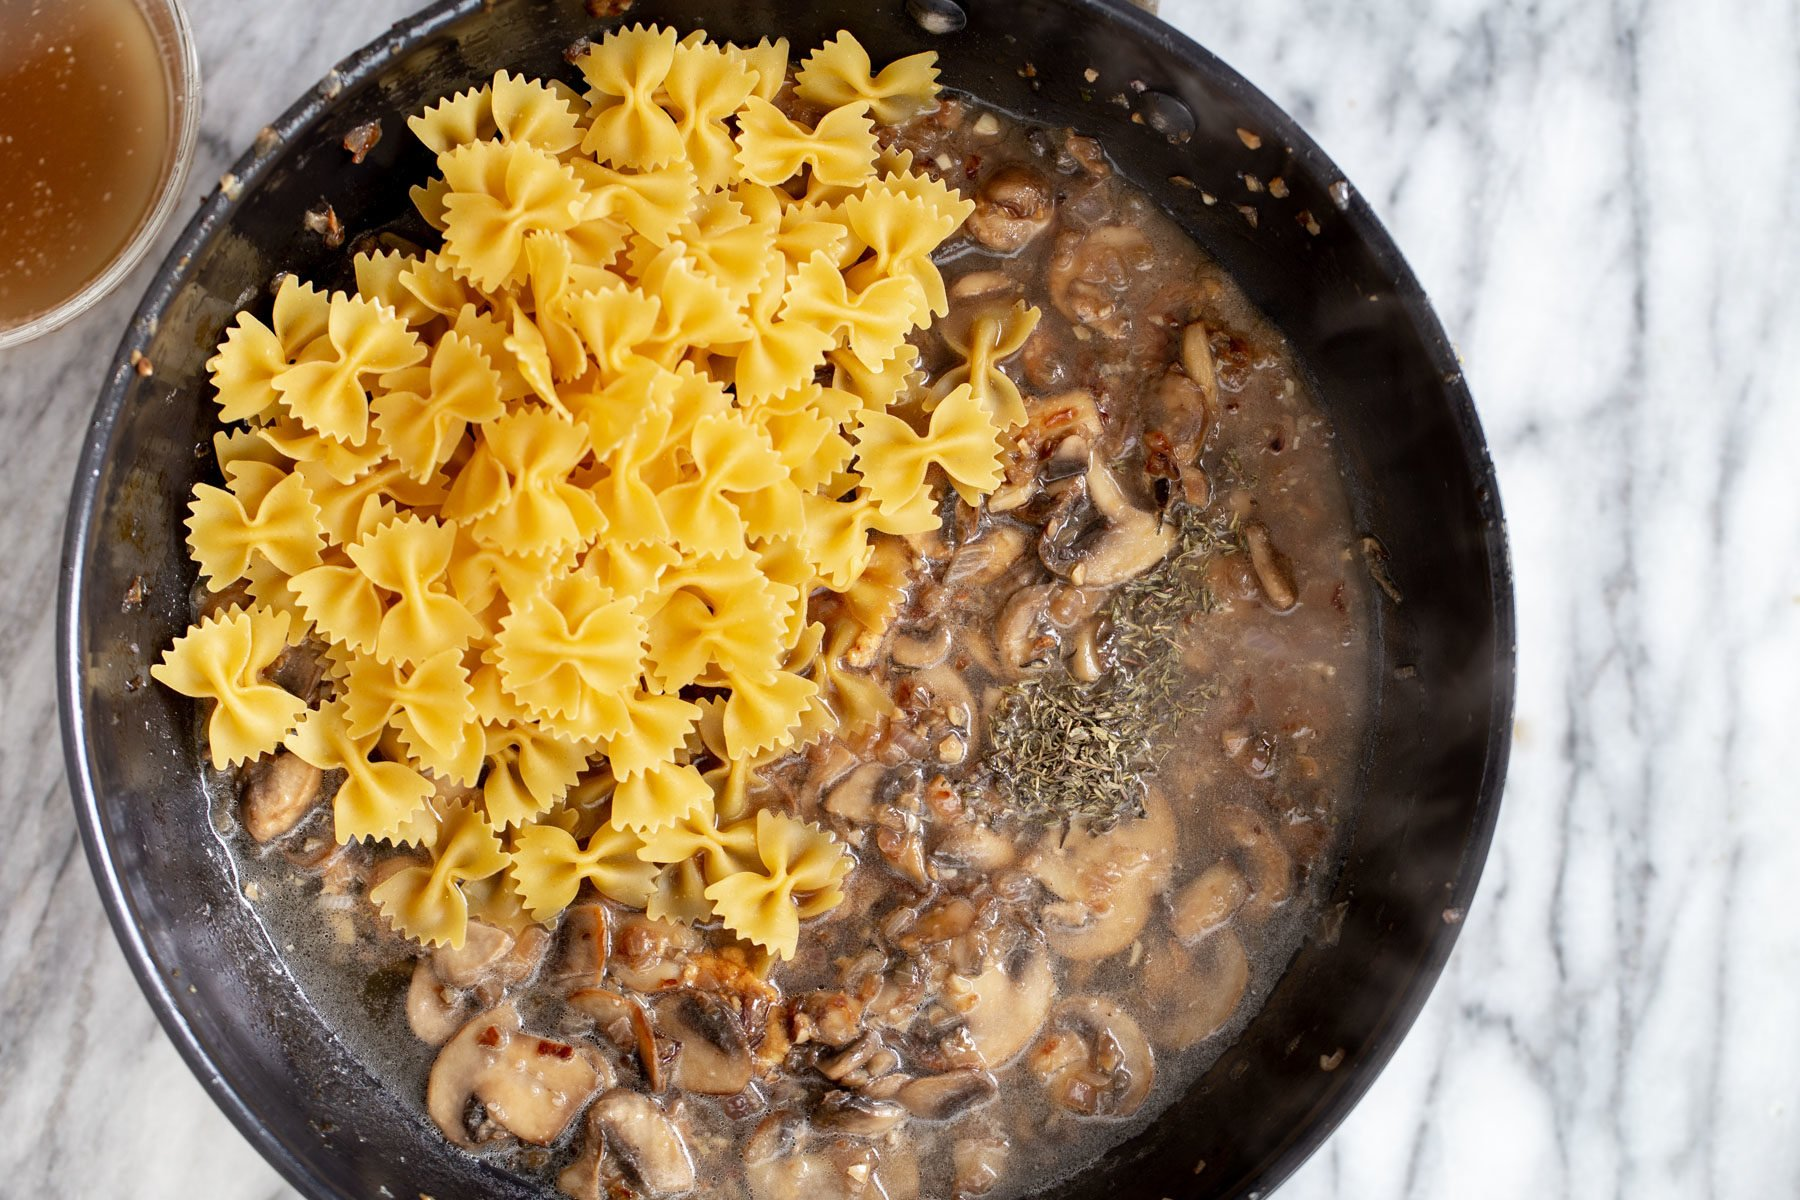 farfalle pasta being added to a pan with mushroom sauce